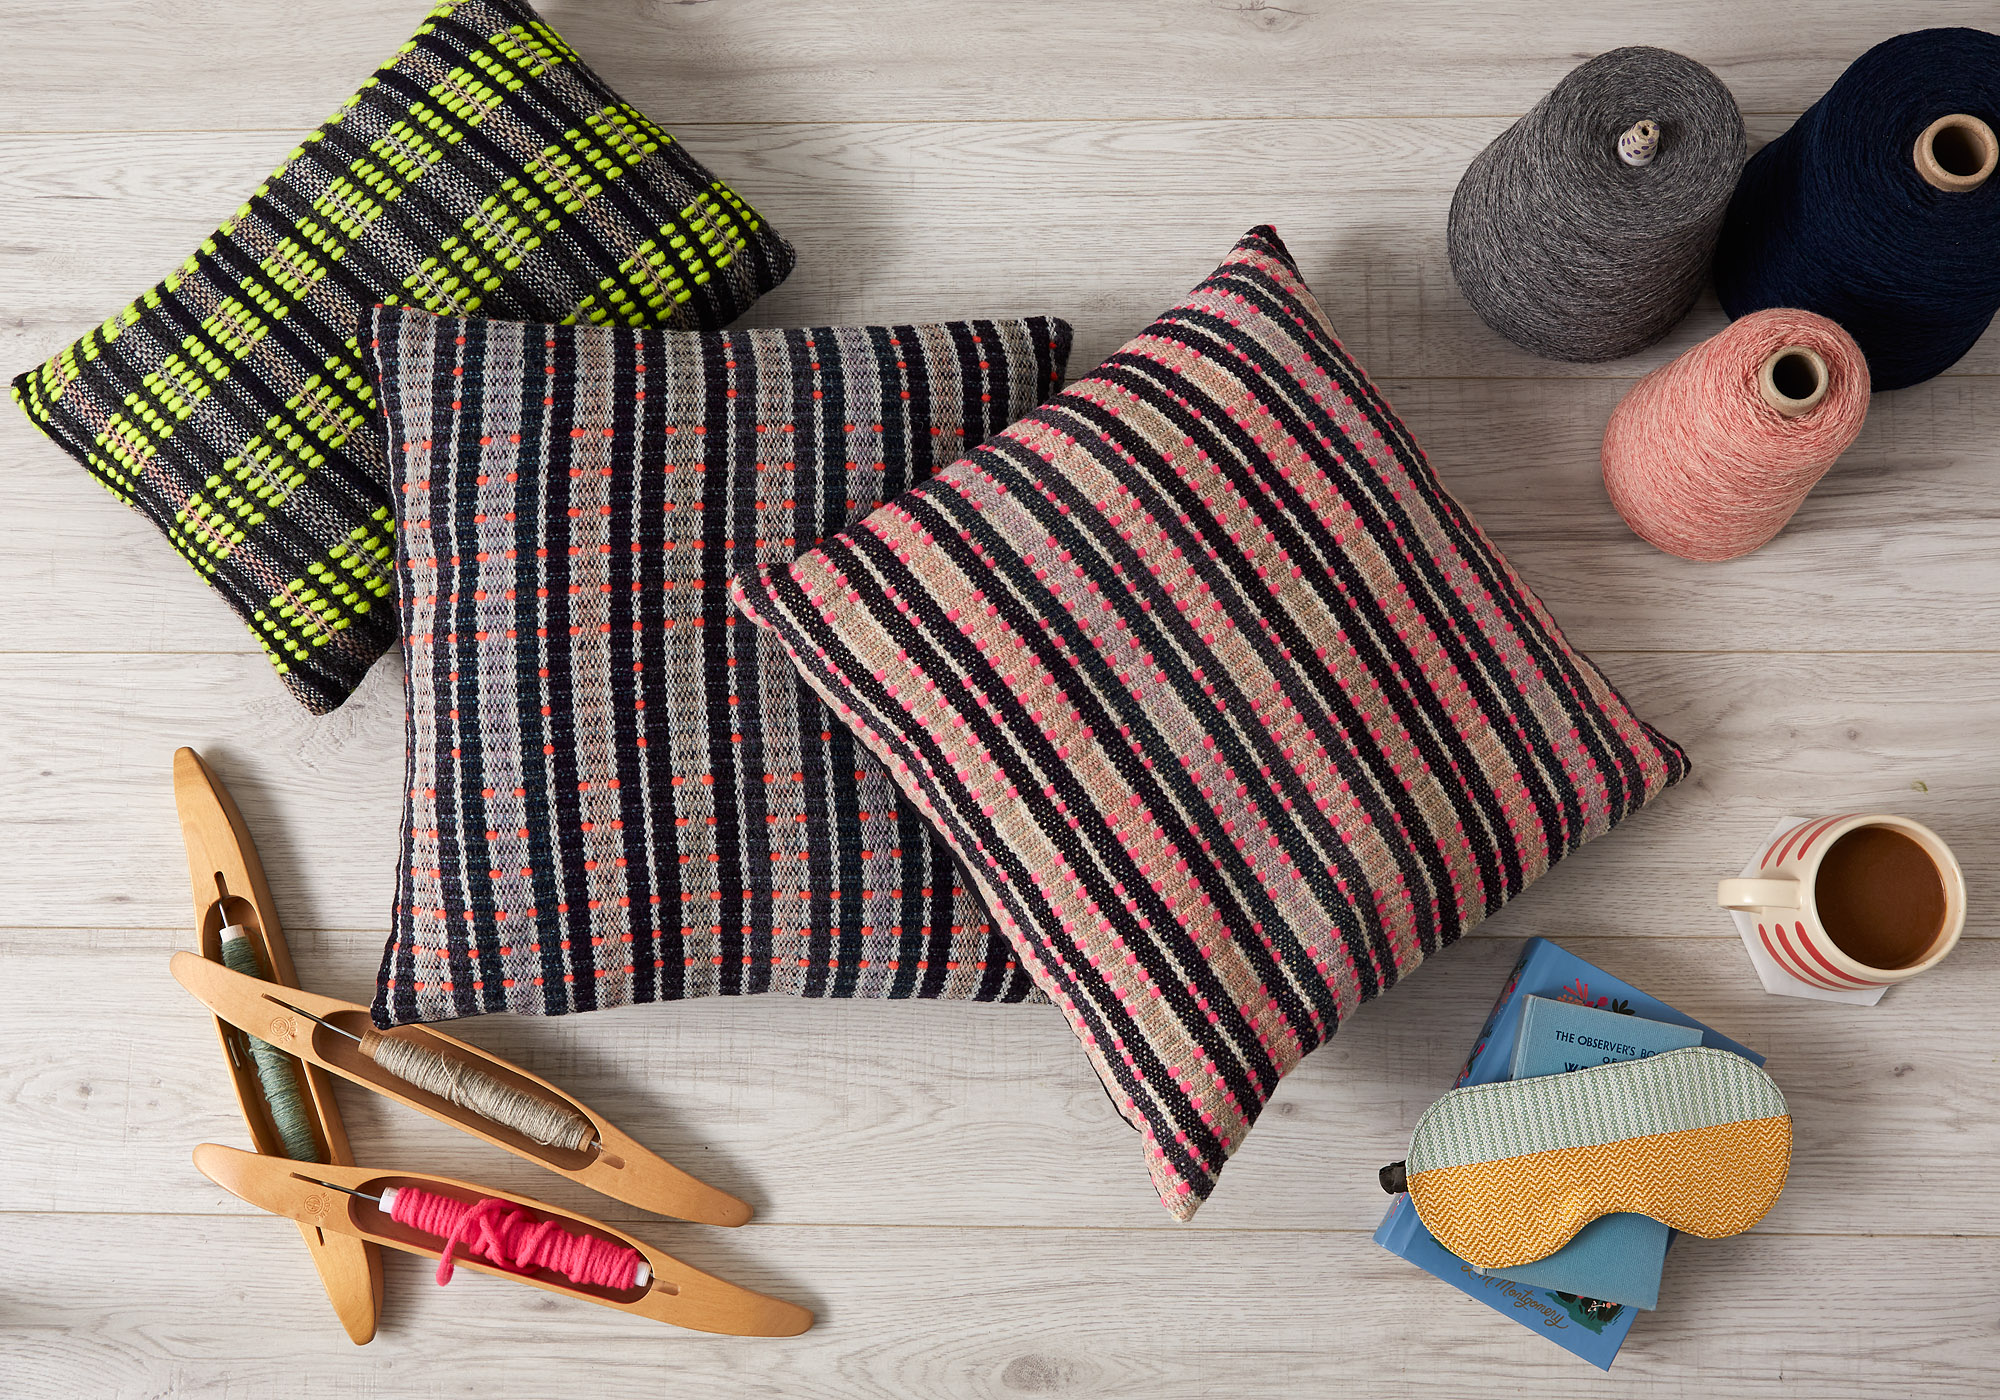 ByCecil_Handwoven_Cushions_Multi_9.jpg